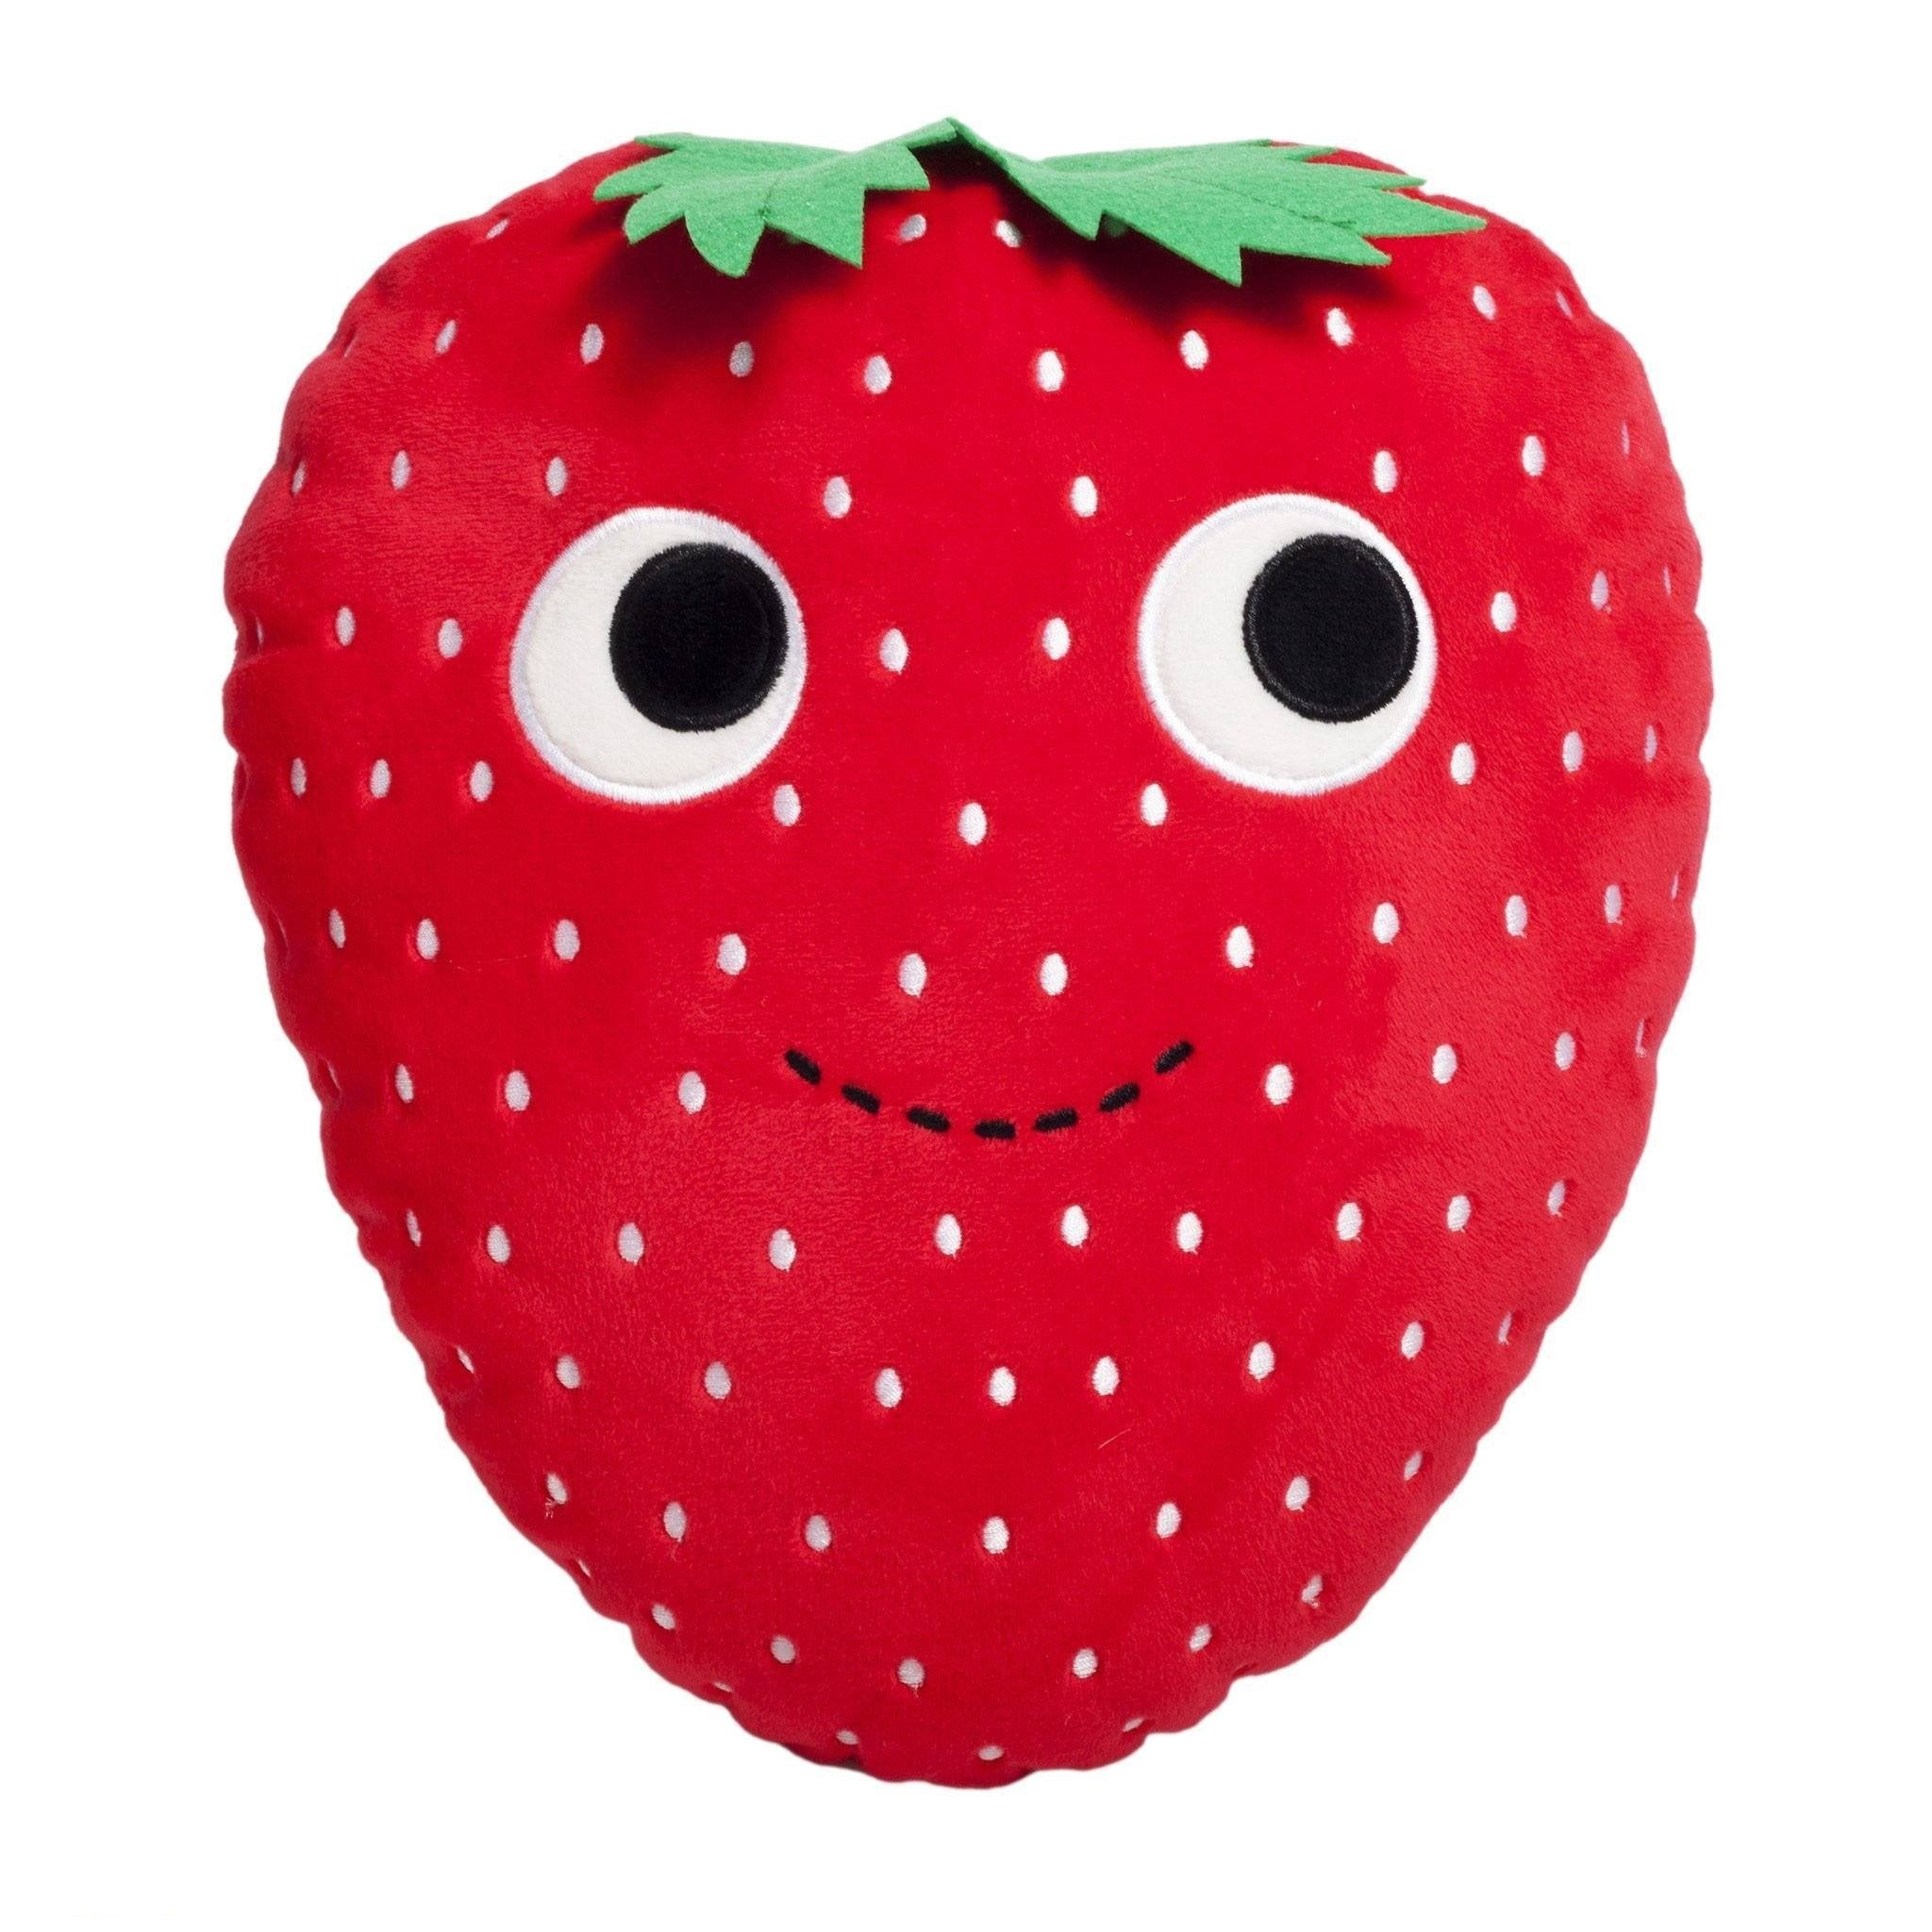 "YUMMY WORLD Strawberry 10"" Plush - Kidrobot - 1"